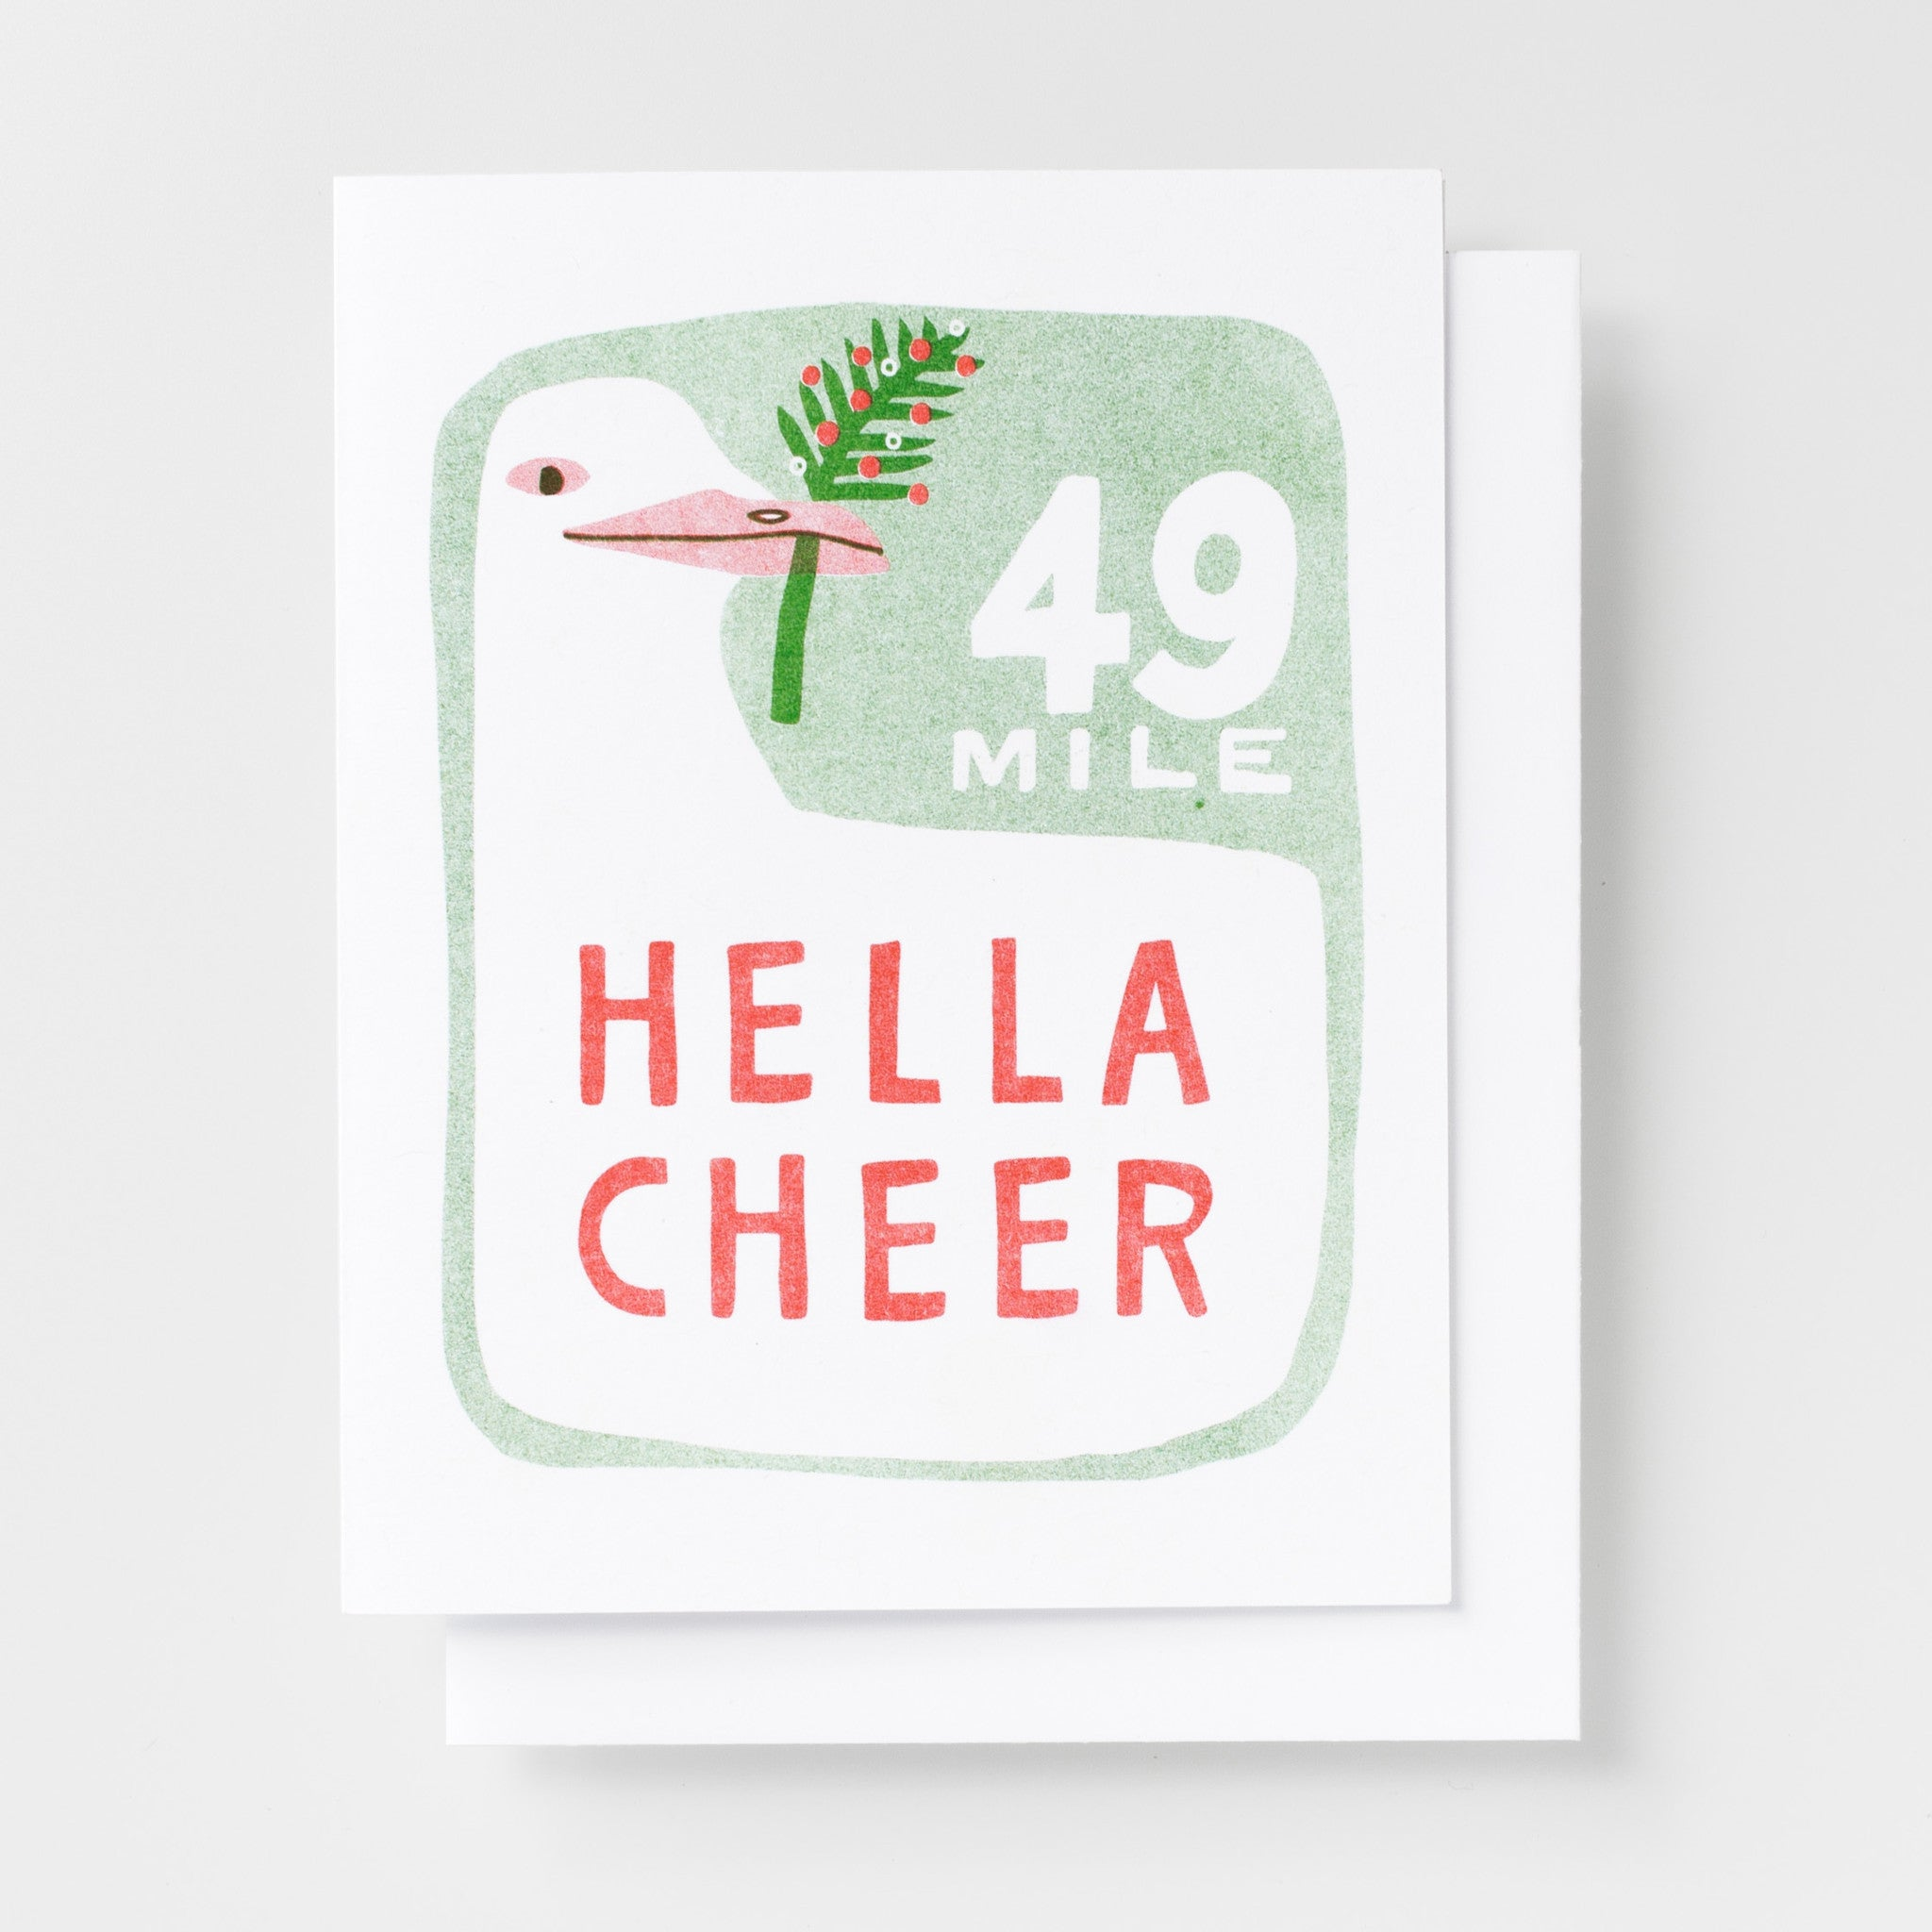 Hella Cheer - Risograph Card